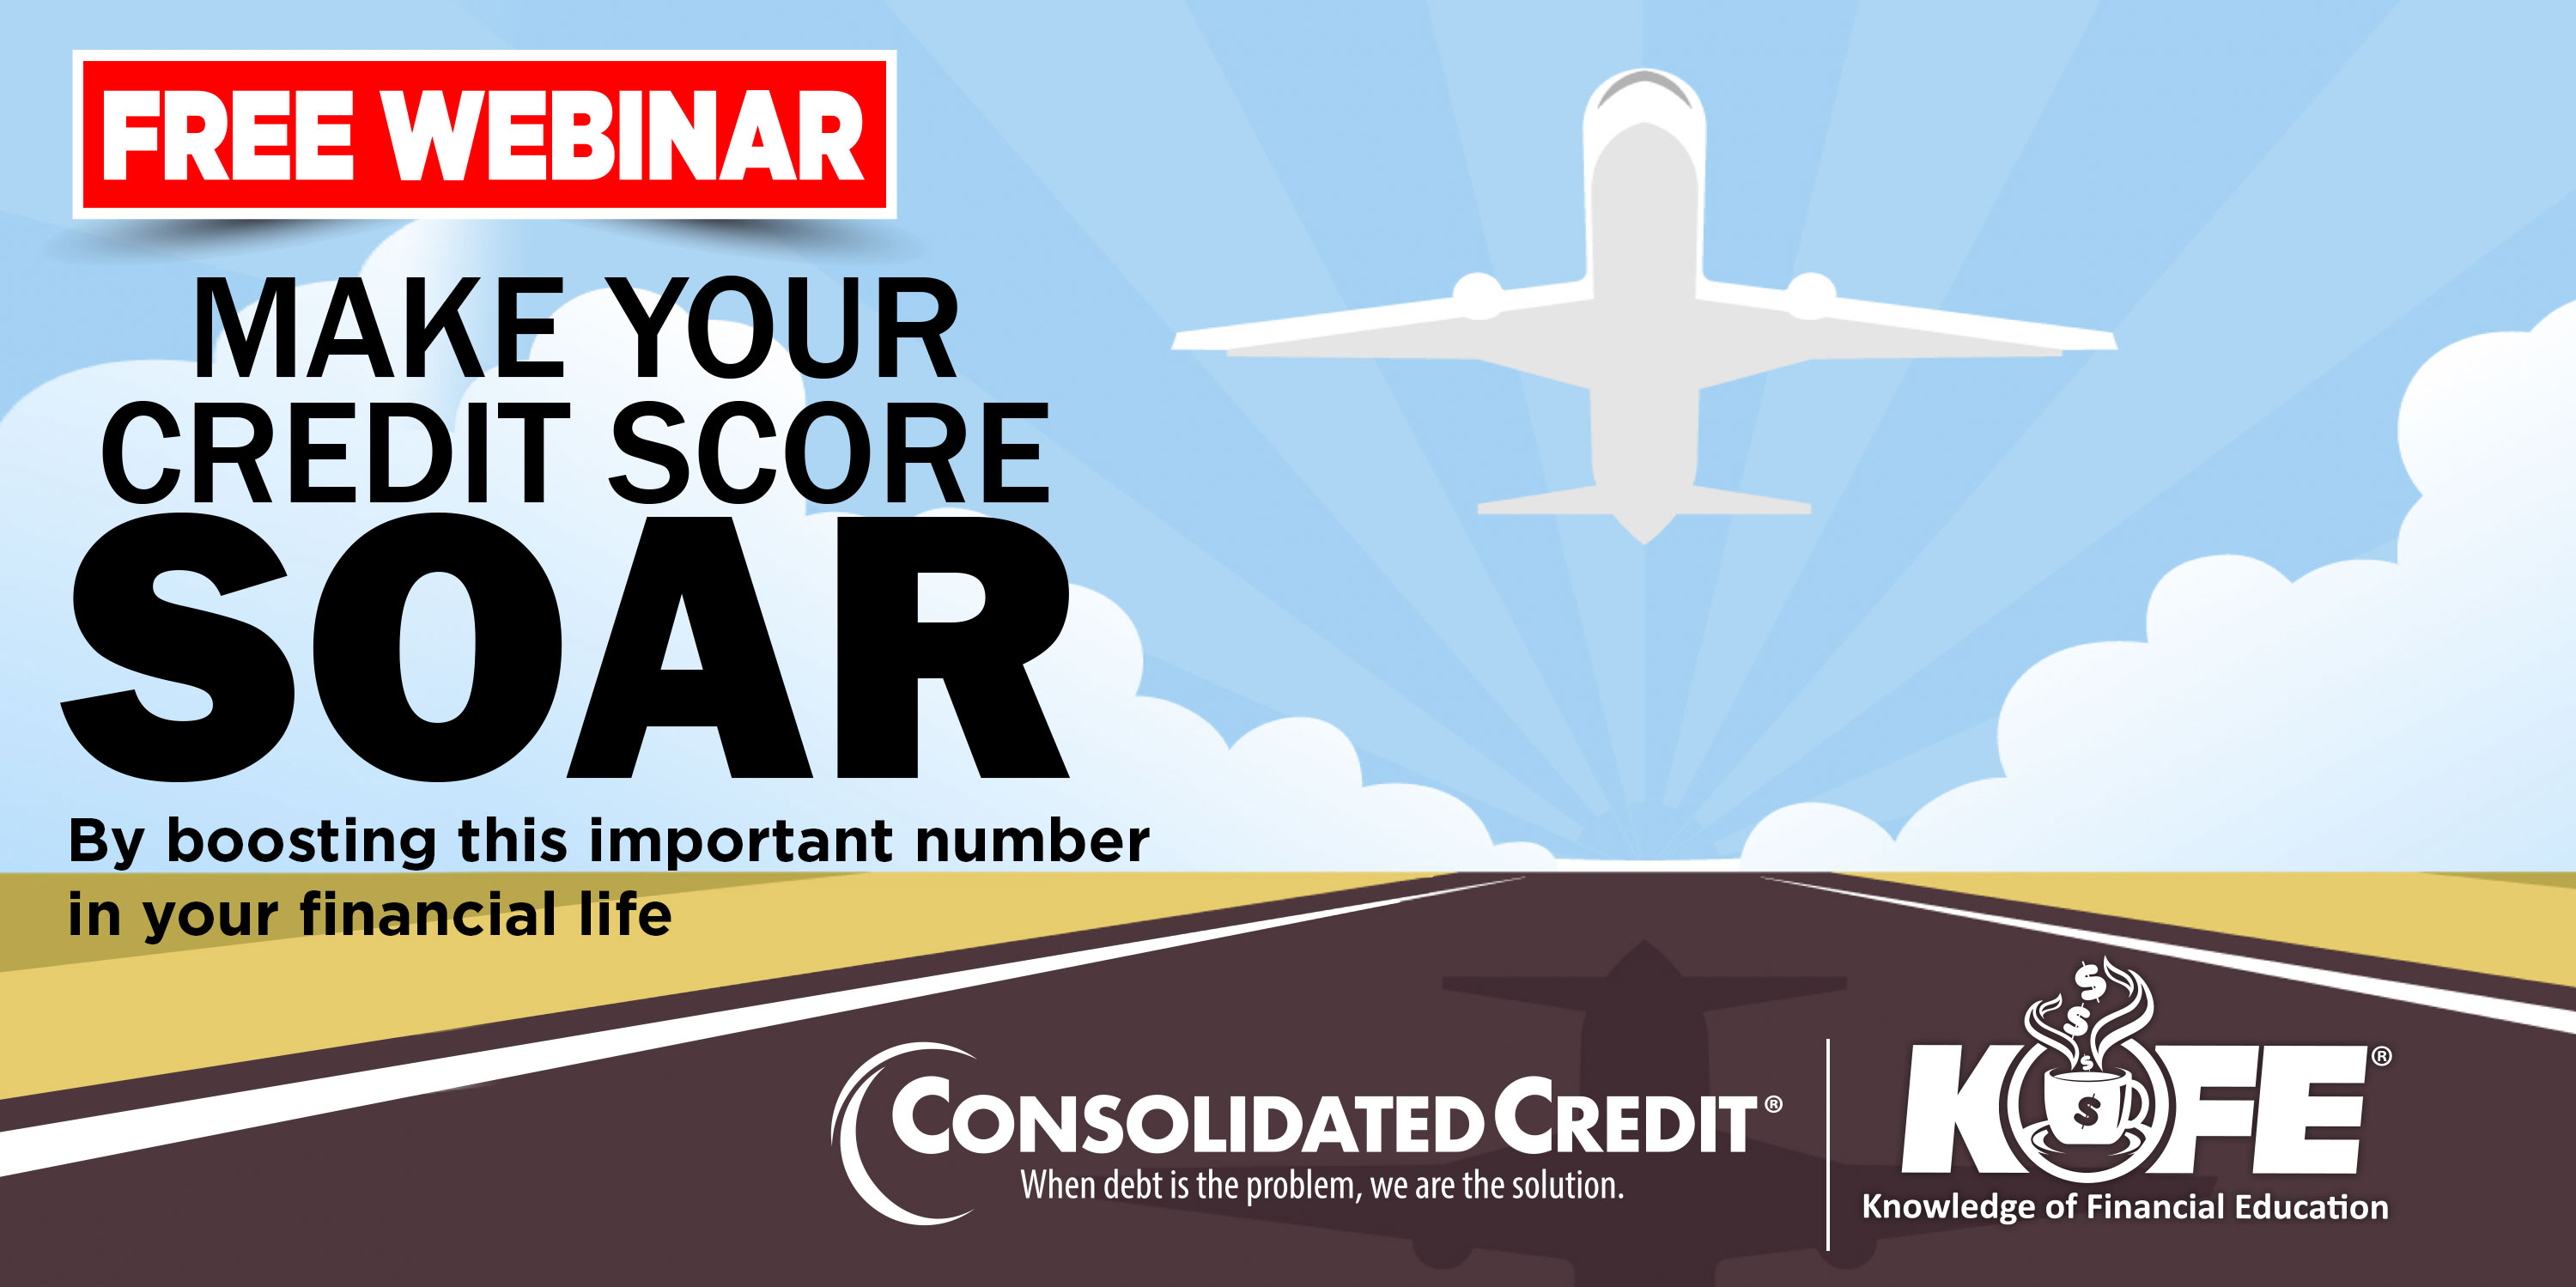 https://www.consolidatedcredit.org/wp-content/uploads/2020/07/July-23-Make-your-Crd-score_CC-Kofe-Webinar_3000x1499_2020.jpg